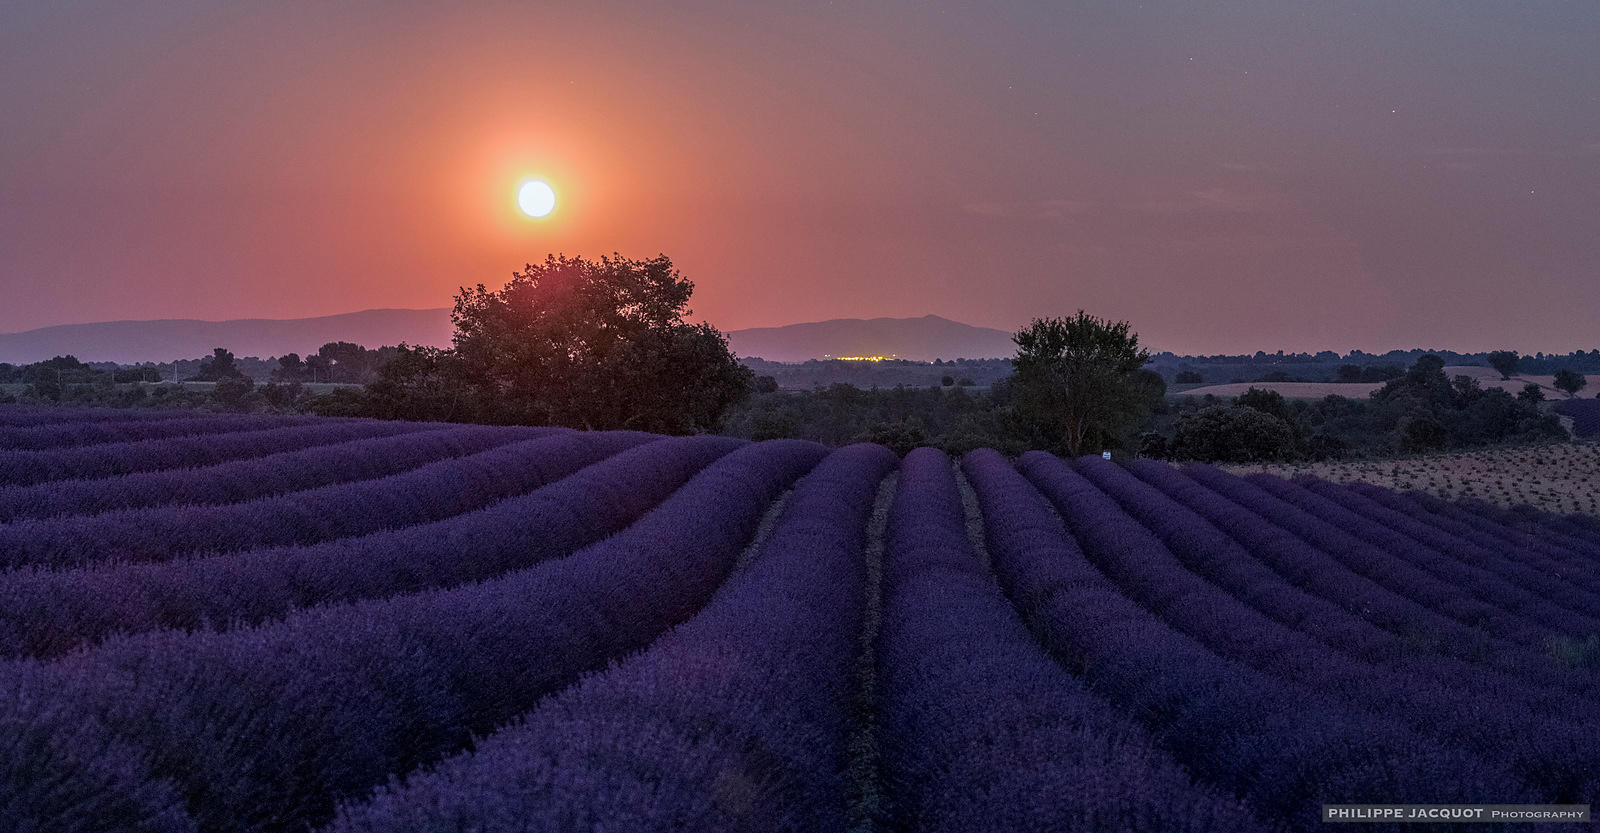 Moonrise over lavender field - Valensole - Alpes Haute Provence